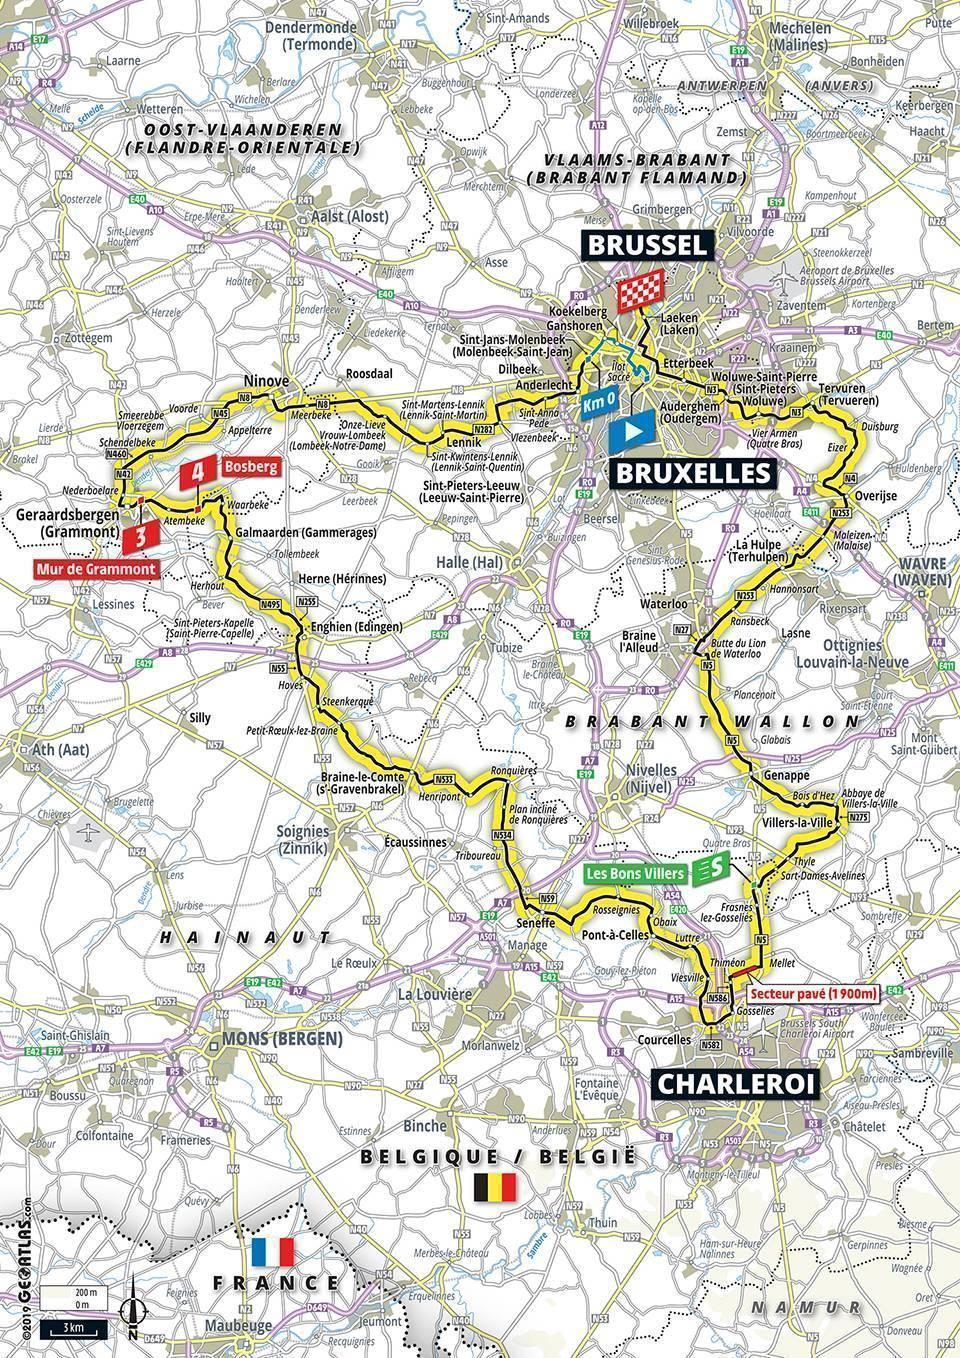 Tour de France 2019: Stage-by-stage guide, route, map, start, dates De Map on